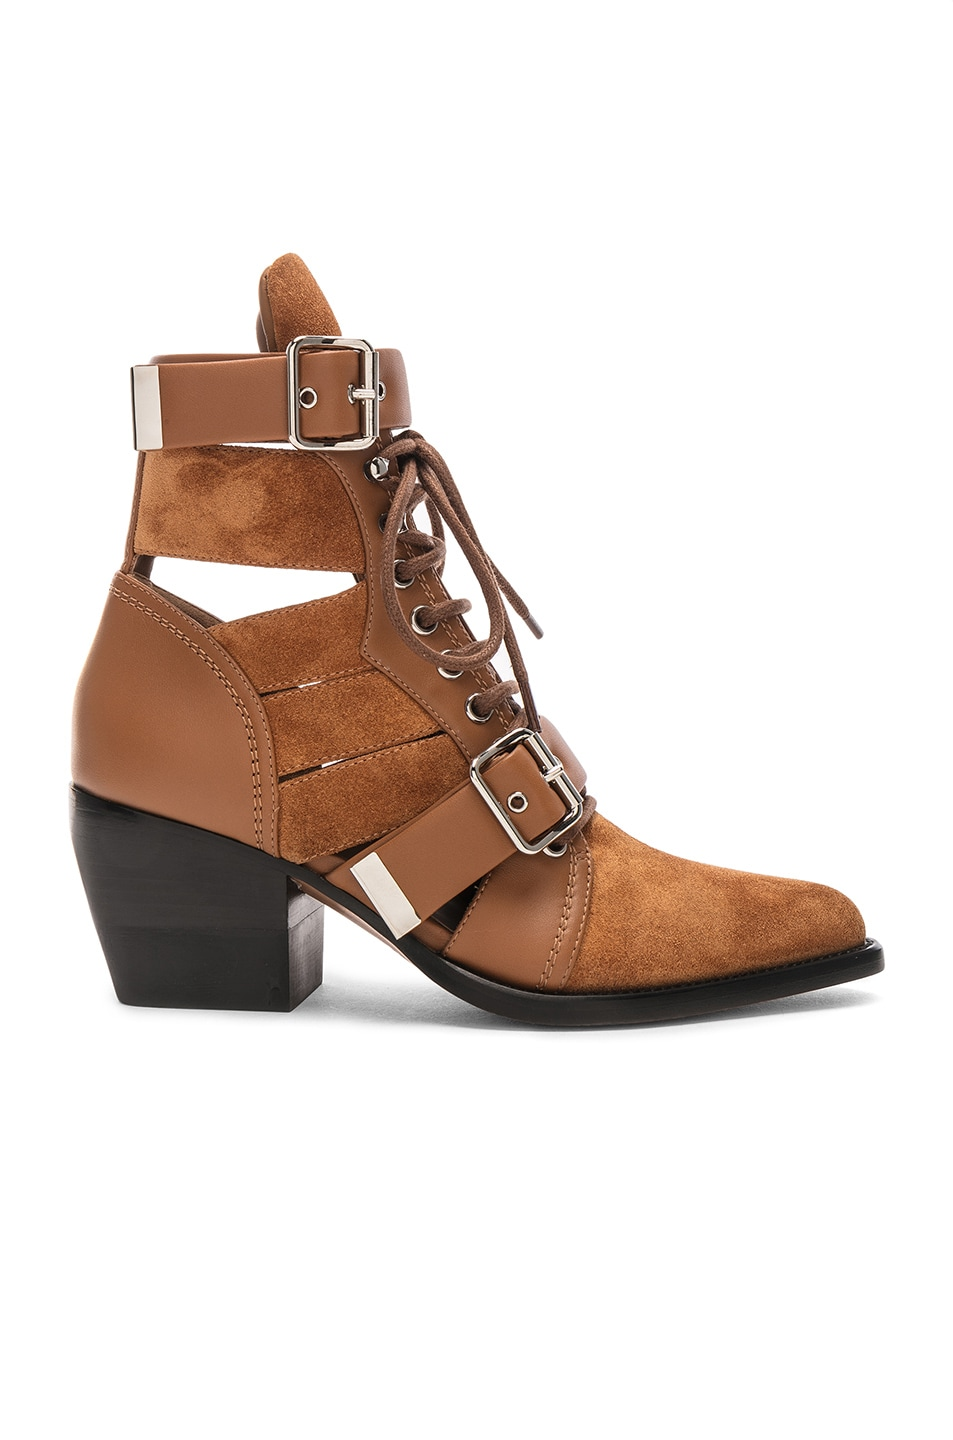 Image 1 of Chloe Lace Up Booties in Natural Brown